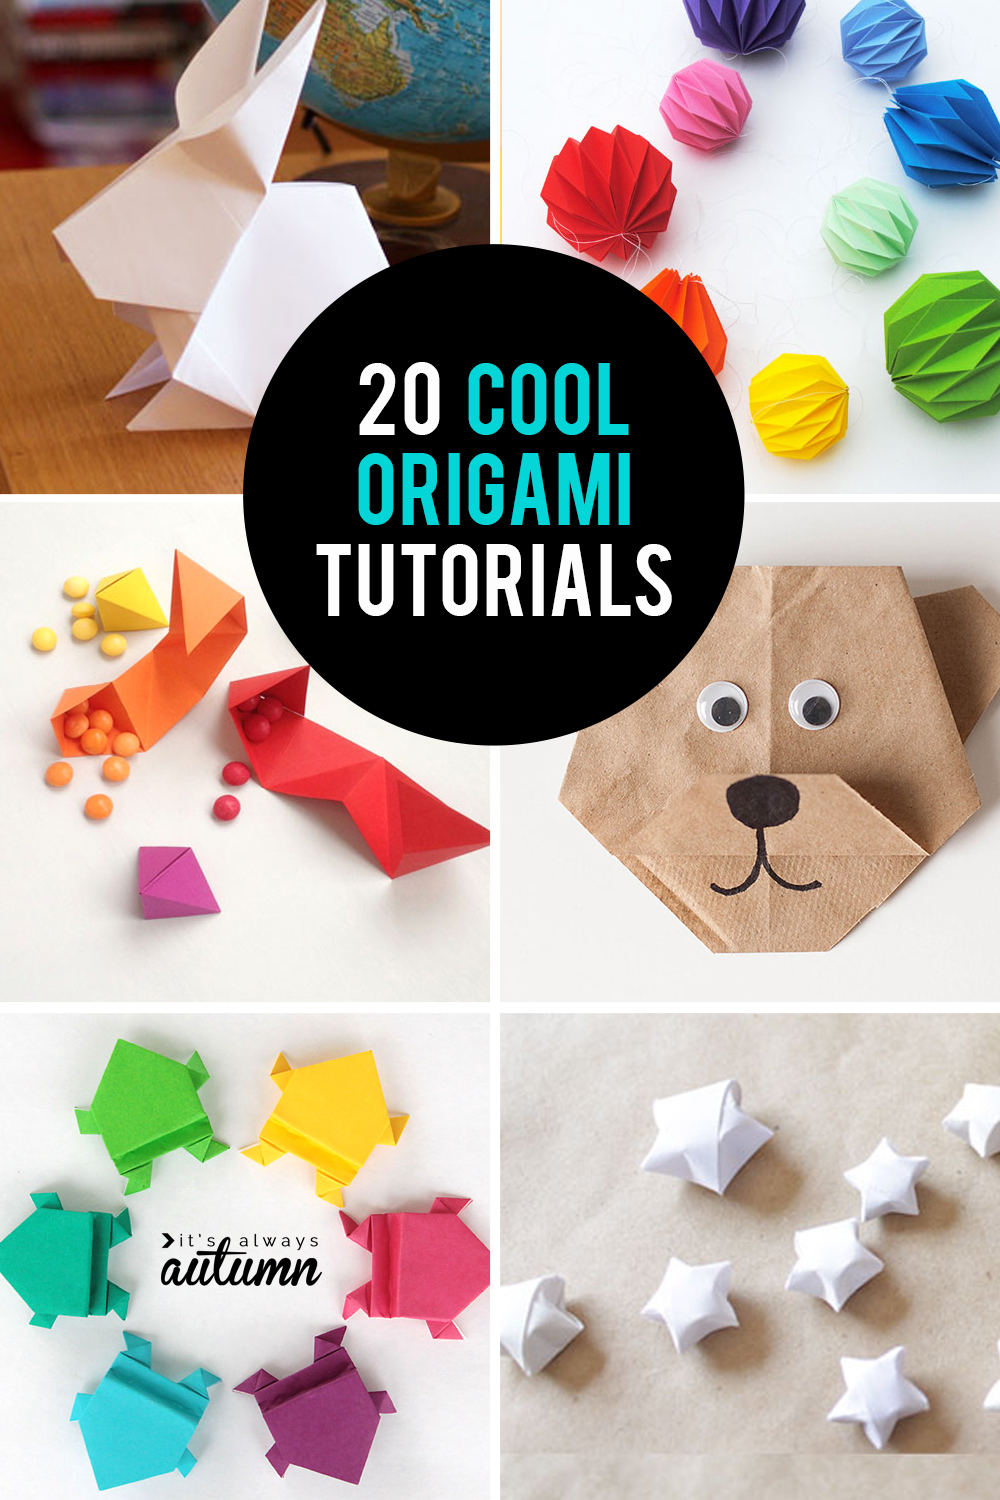 Easy Money Origami Instructions For Kids 20 Cool Origami Tutorials Kids And Adults Will Love Its Always